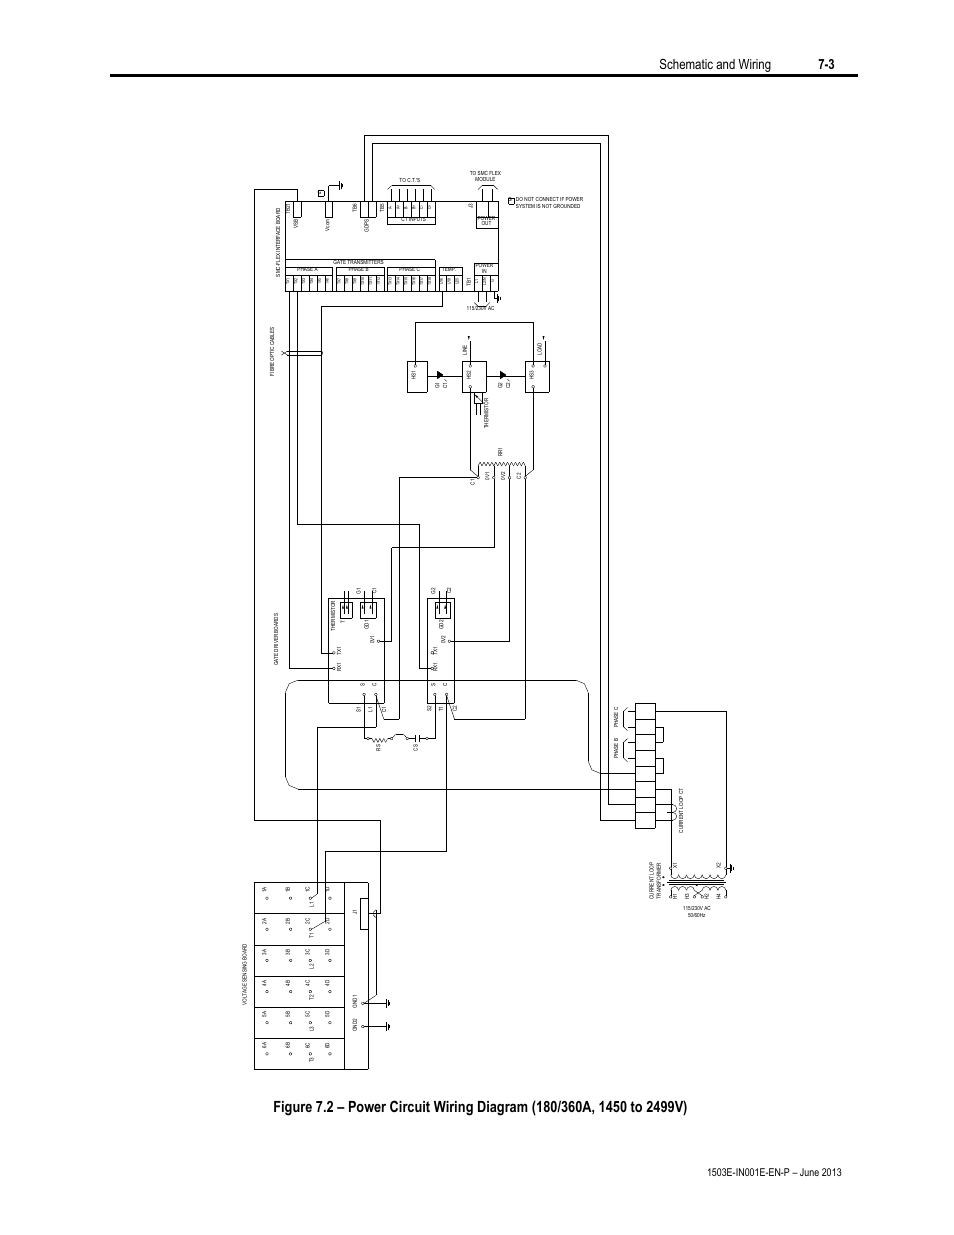 Bohn Heatcraft Evaporator Wiring Diagram Heatcraft Model